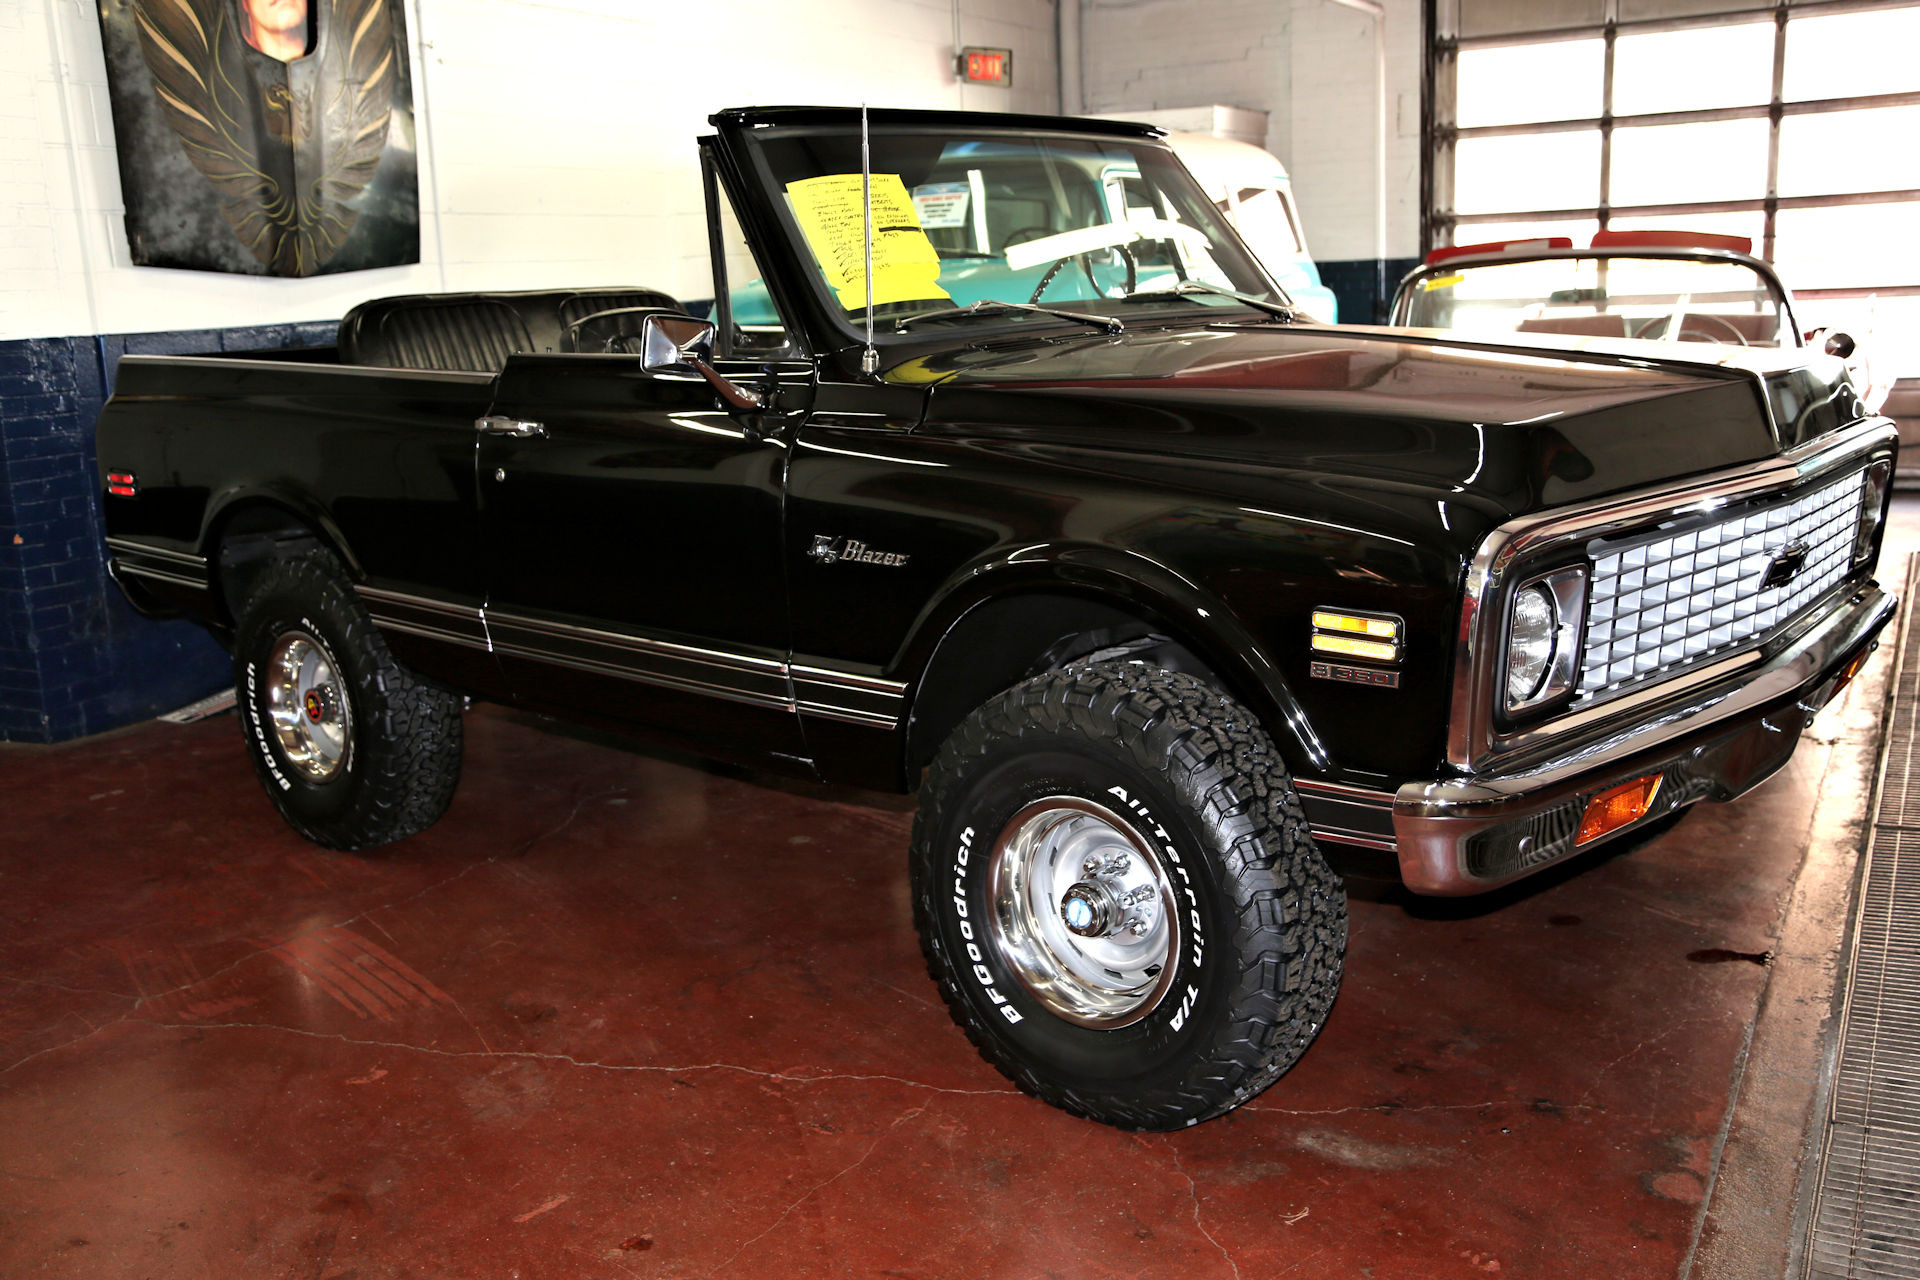 For Sale Used 1972 Chevrolet Blazer K-5 CST 4x4 AC Fresh | American Dream Machines Des Moines IA 50309